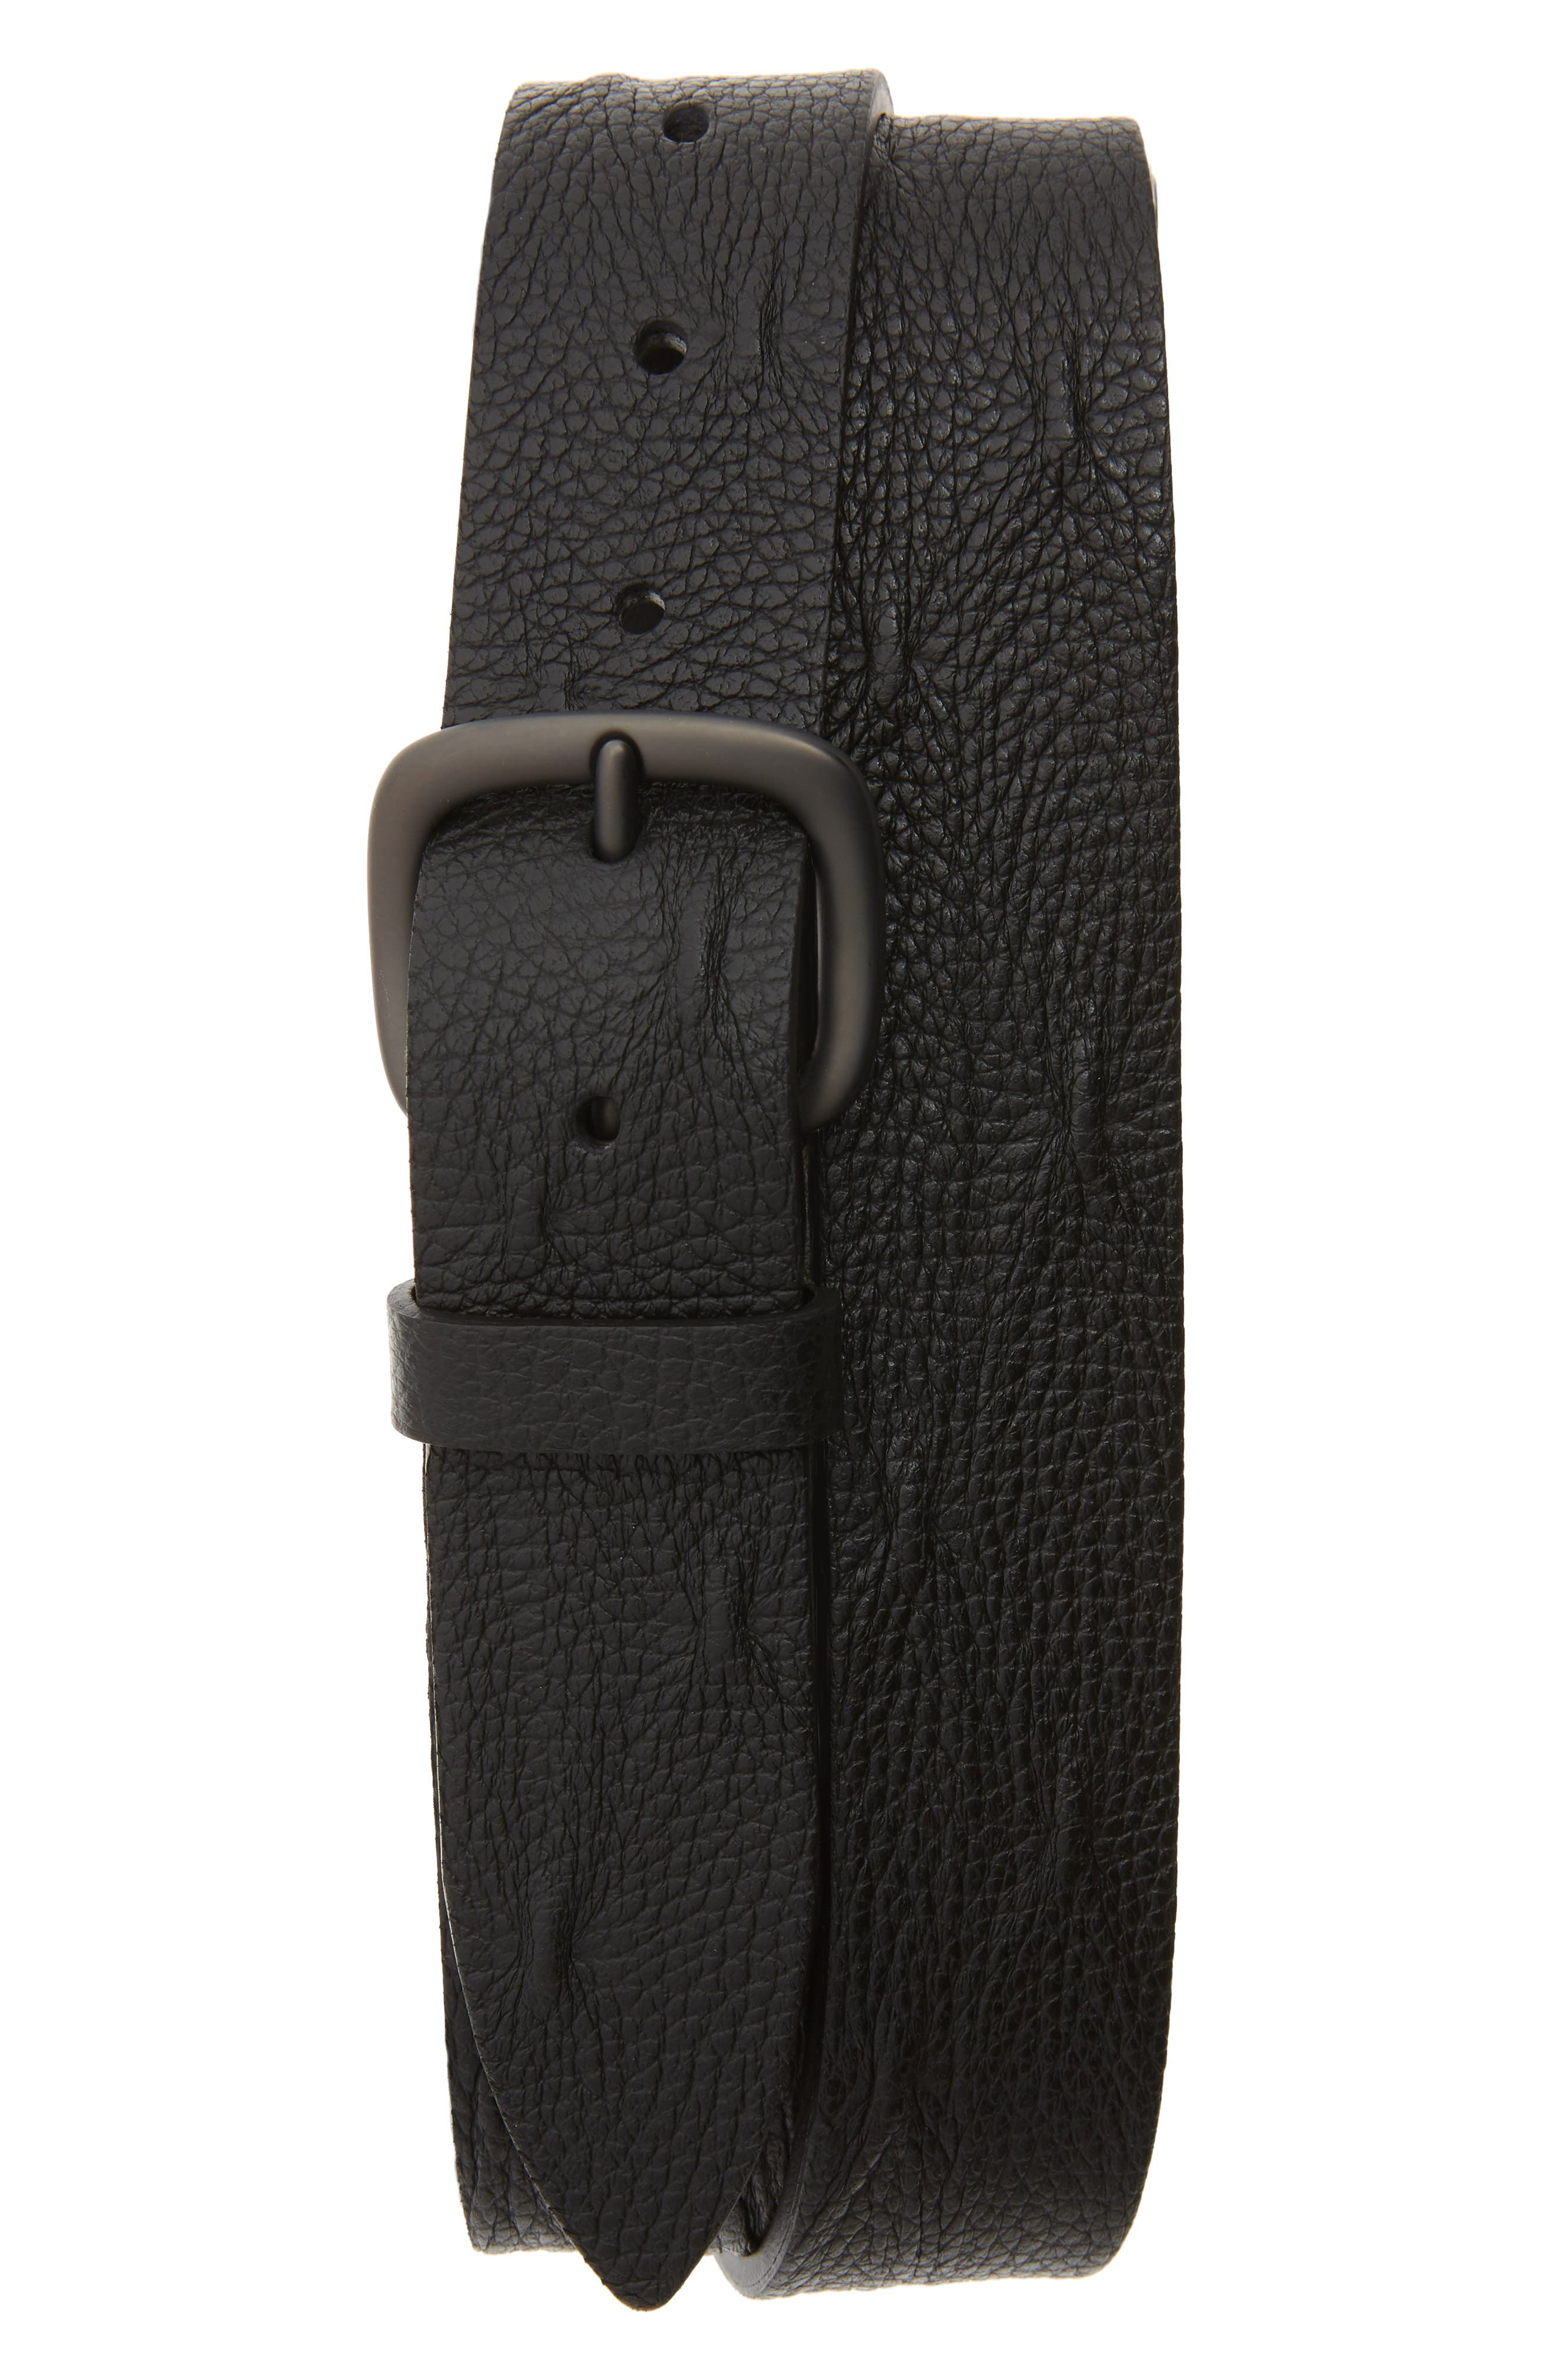 ORCIANI, Micron Pebbled Leather Belt, Main thumbnail 1, color, 001